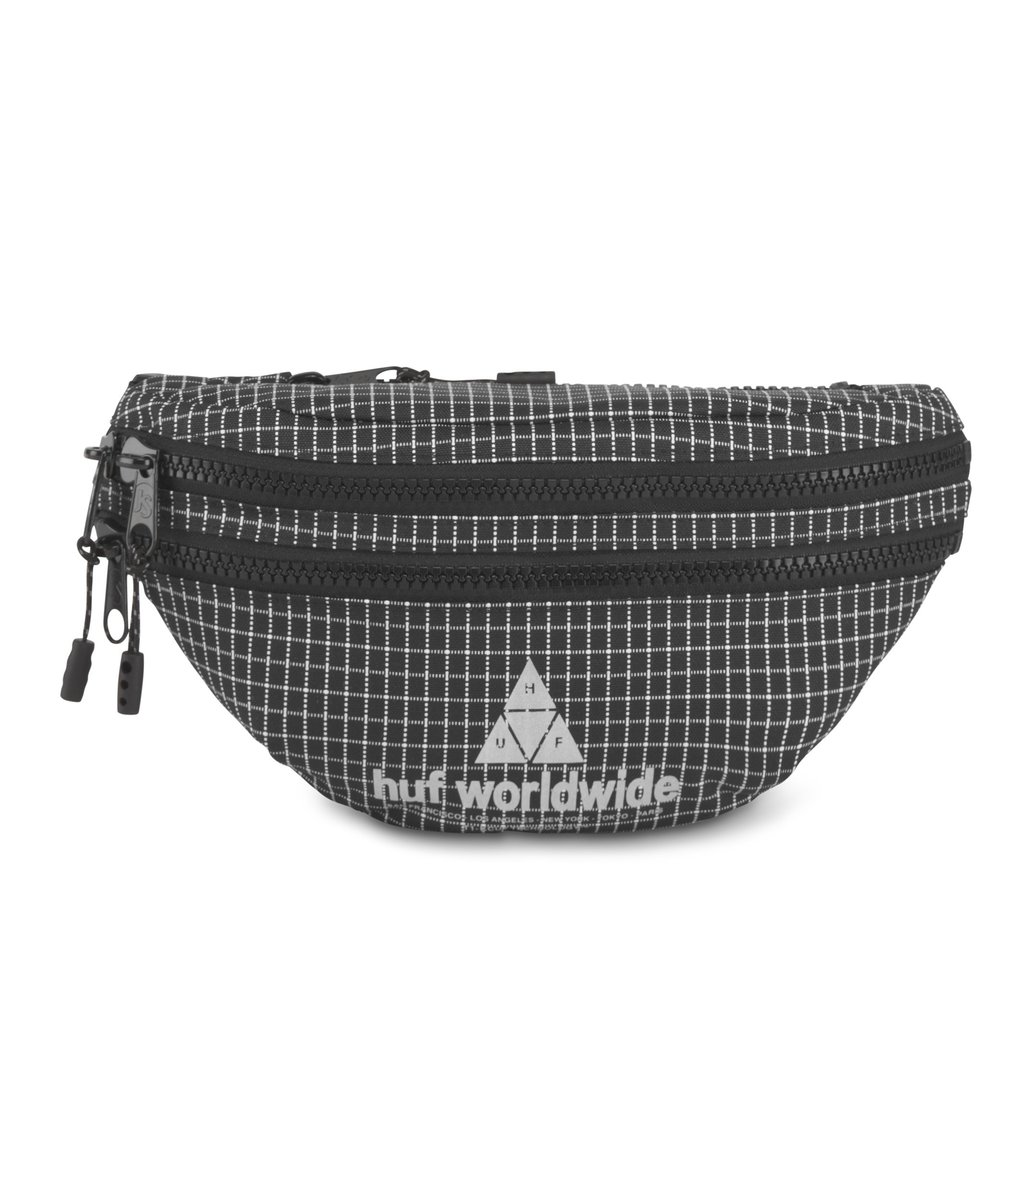 HUF X JANSPORT OAKTOWN WAIST PACK - BLACK